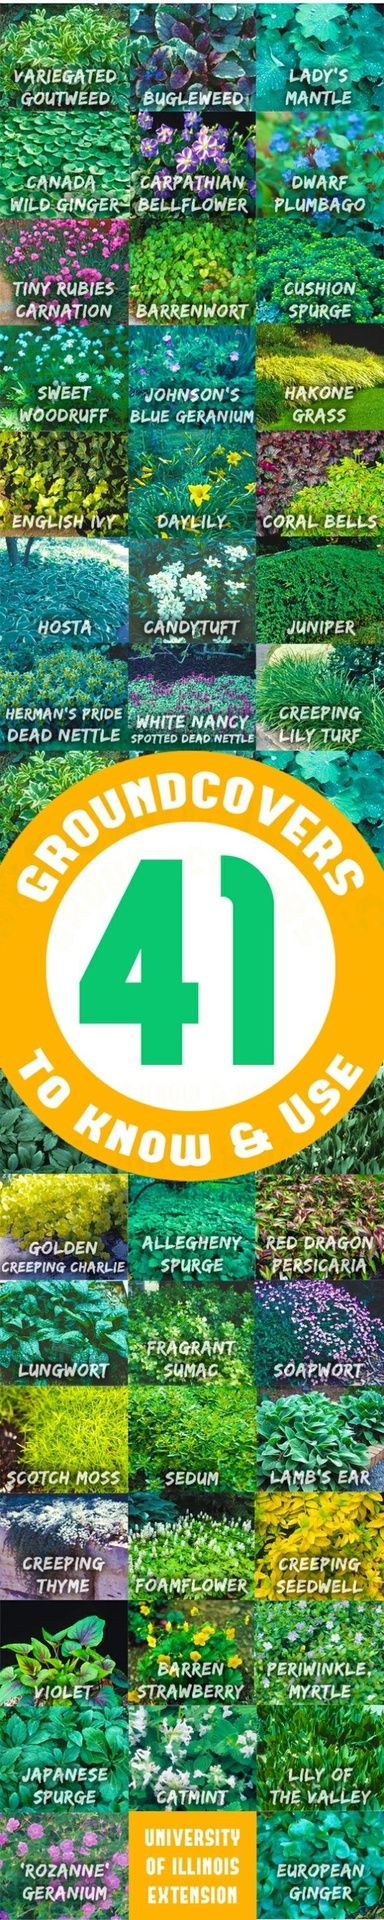 41 Groundcovers to K Flowers Garden Love